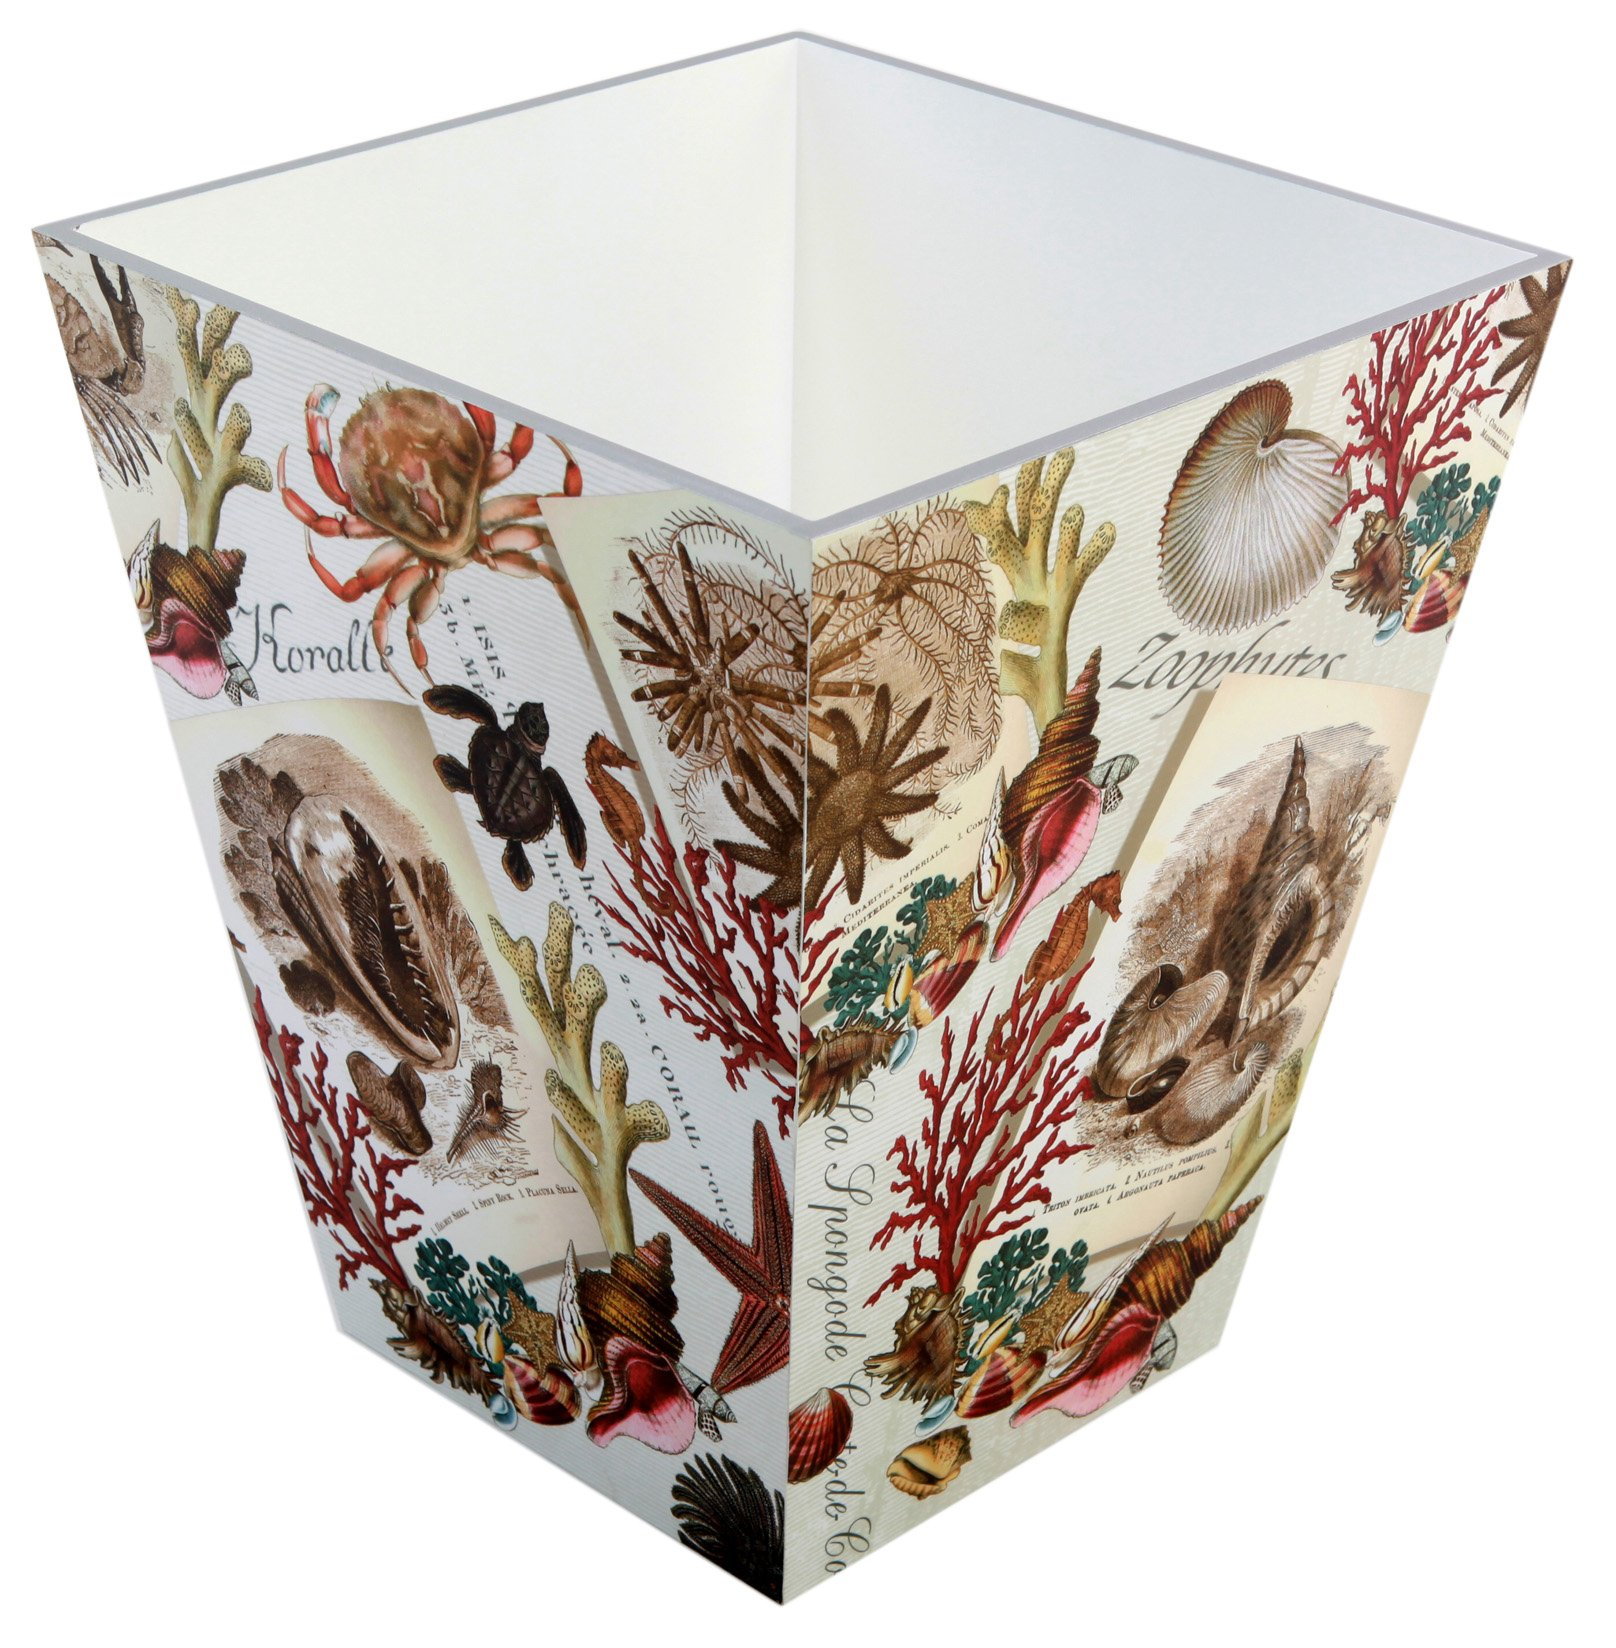 Decorative Wooden Waste Bin, Nautical Diary, White, Ocean, Coastal, Shells, Corals, Starfish, Bathroom Home Decor, Exclusively for TSC Giftables